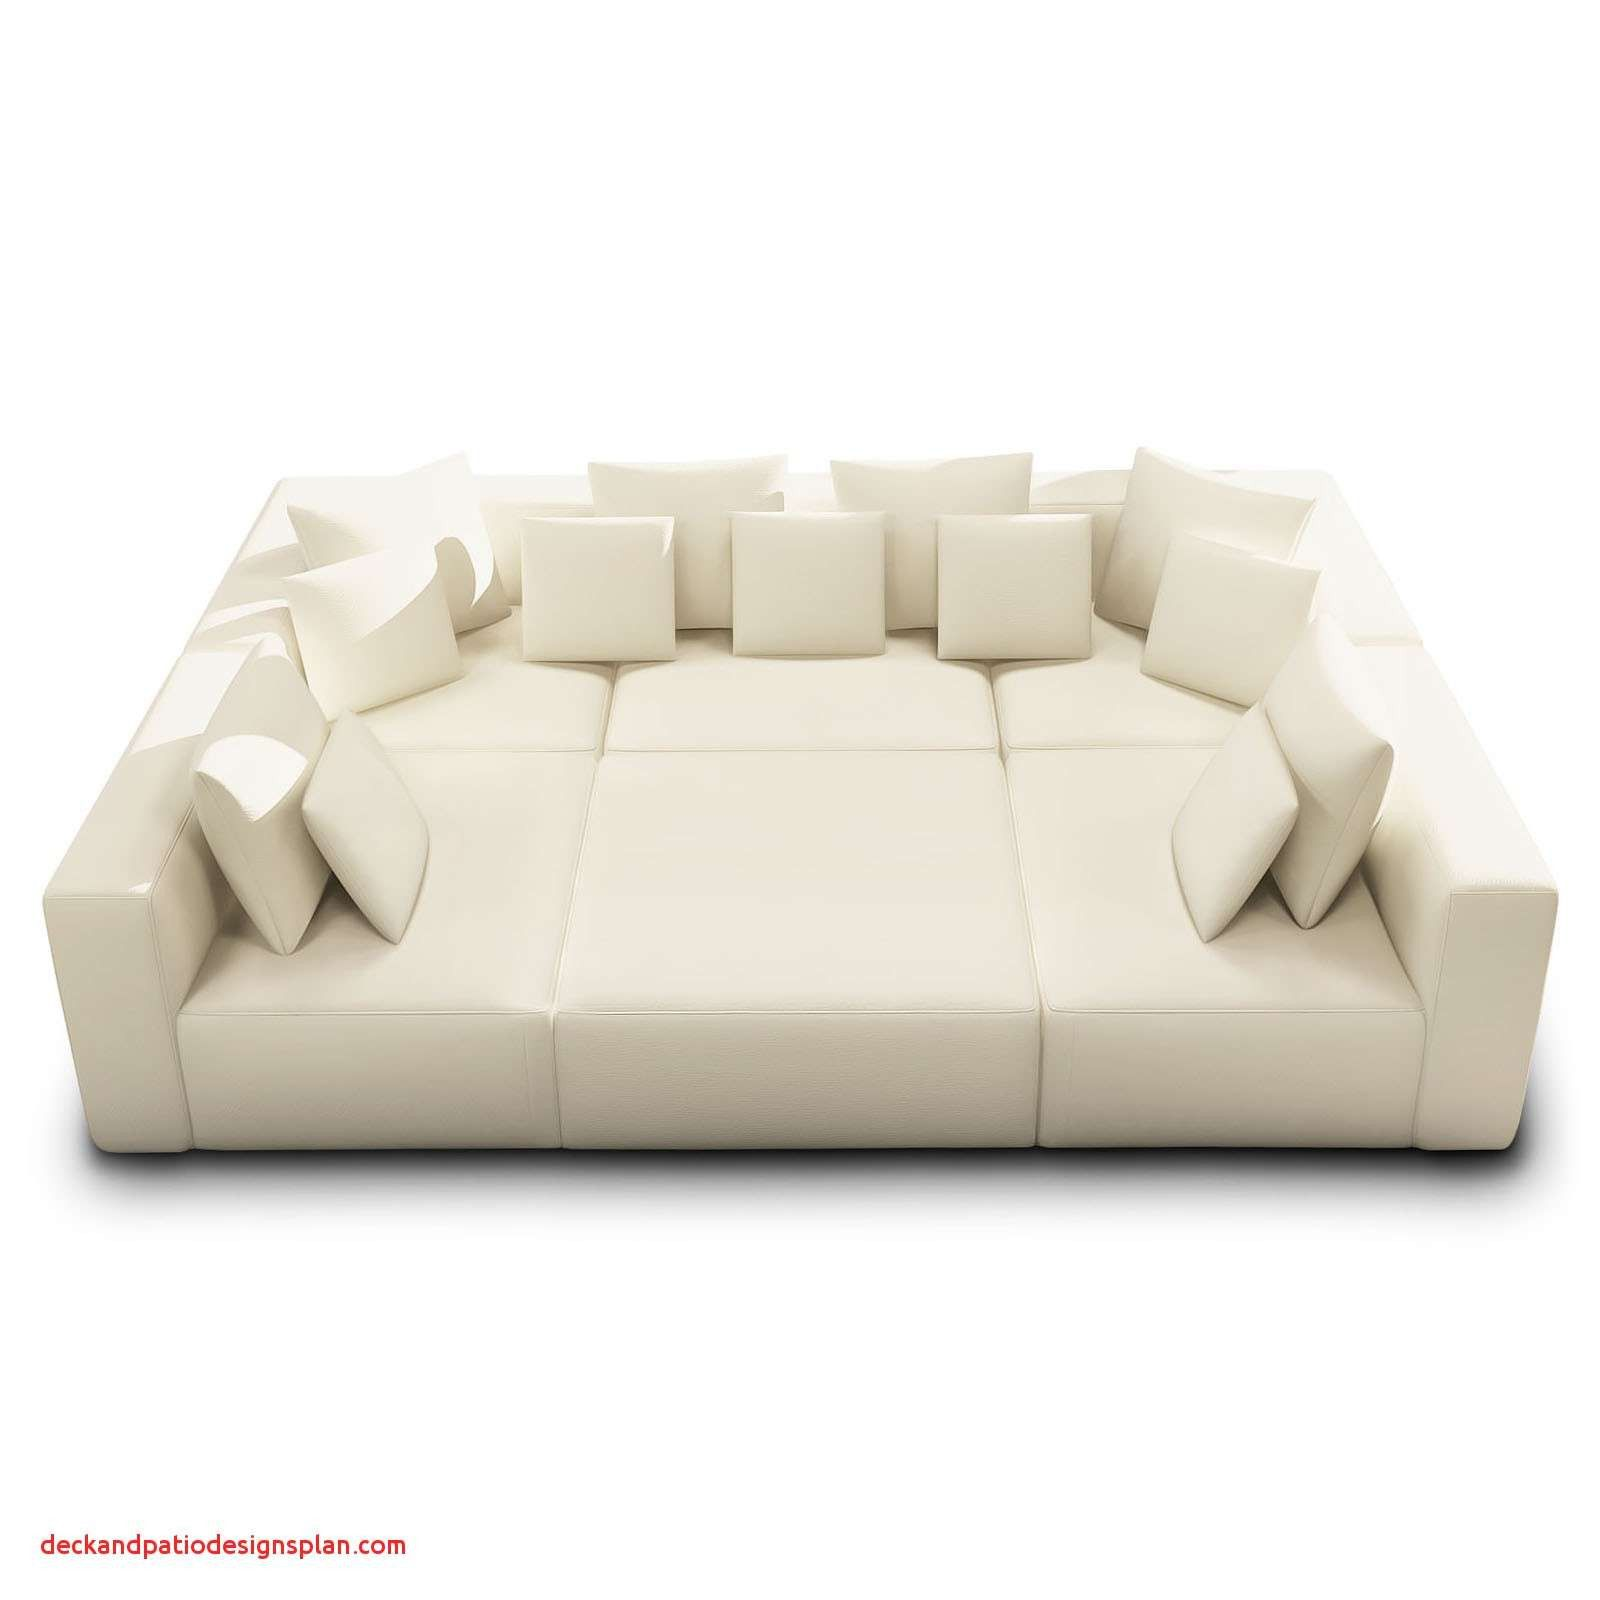 Big Sofa Federkern Big Sofa Leder Patio Sofas Awesome Wicker Outdoor Sofa 0d Patio Sofal Sofa L